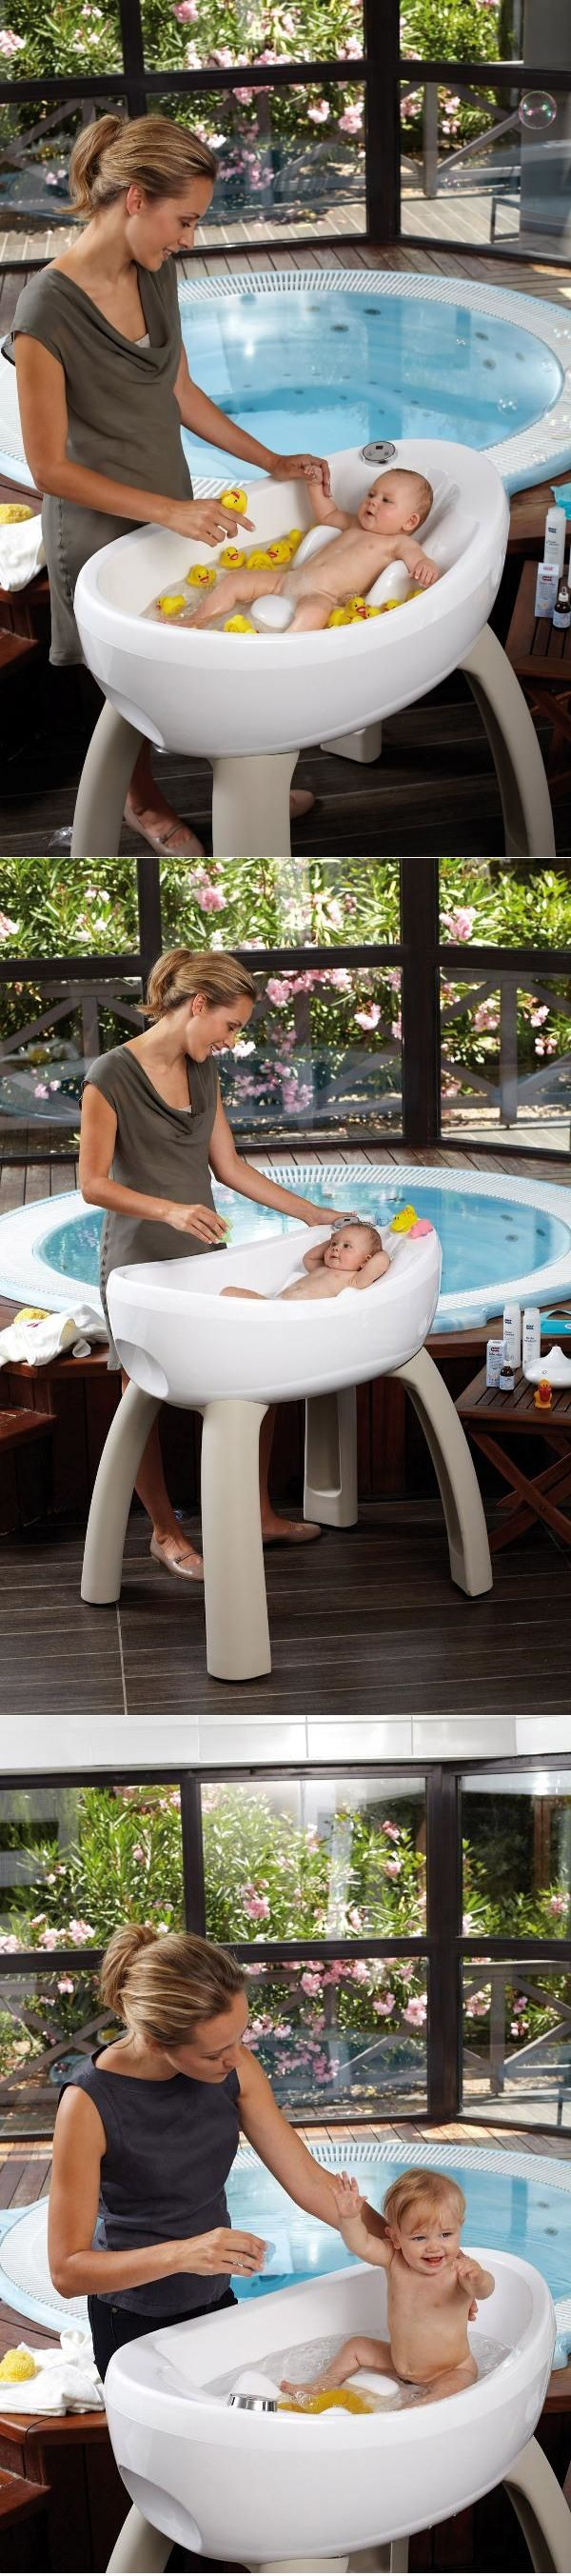 MagicBath: A Innovative Baby Bath